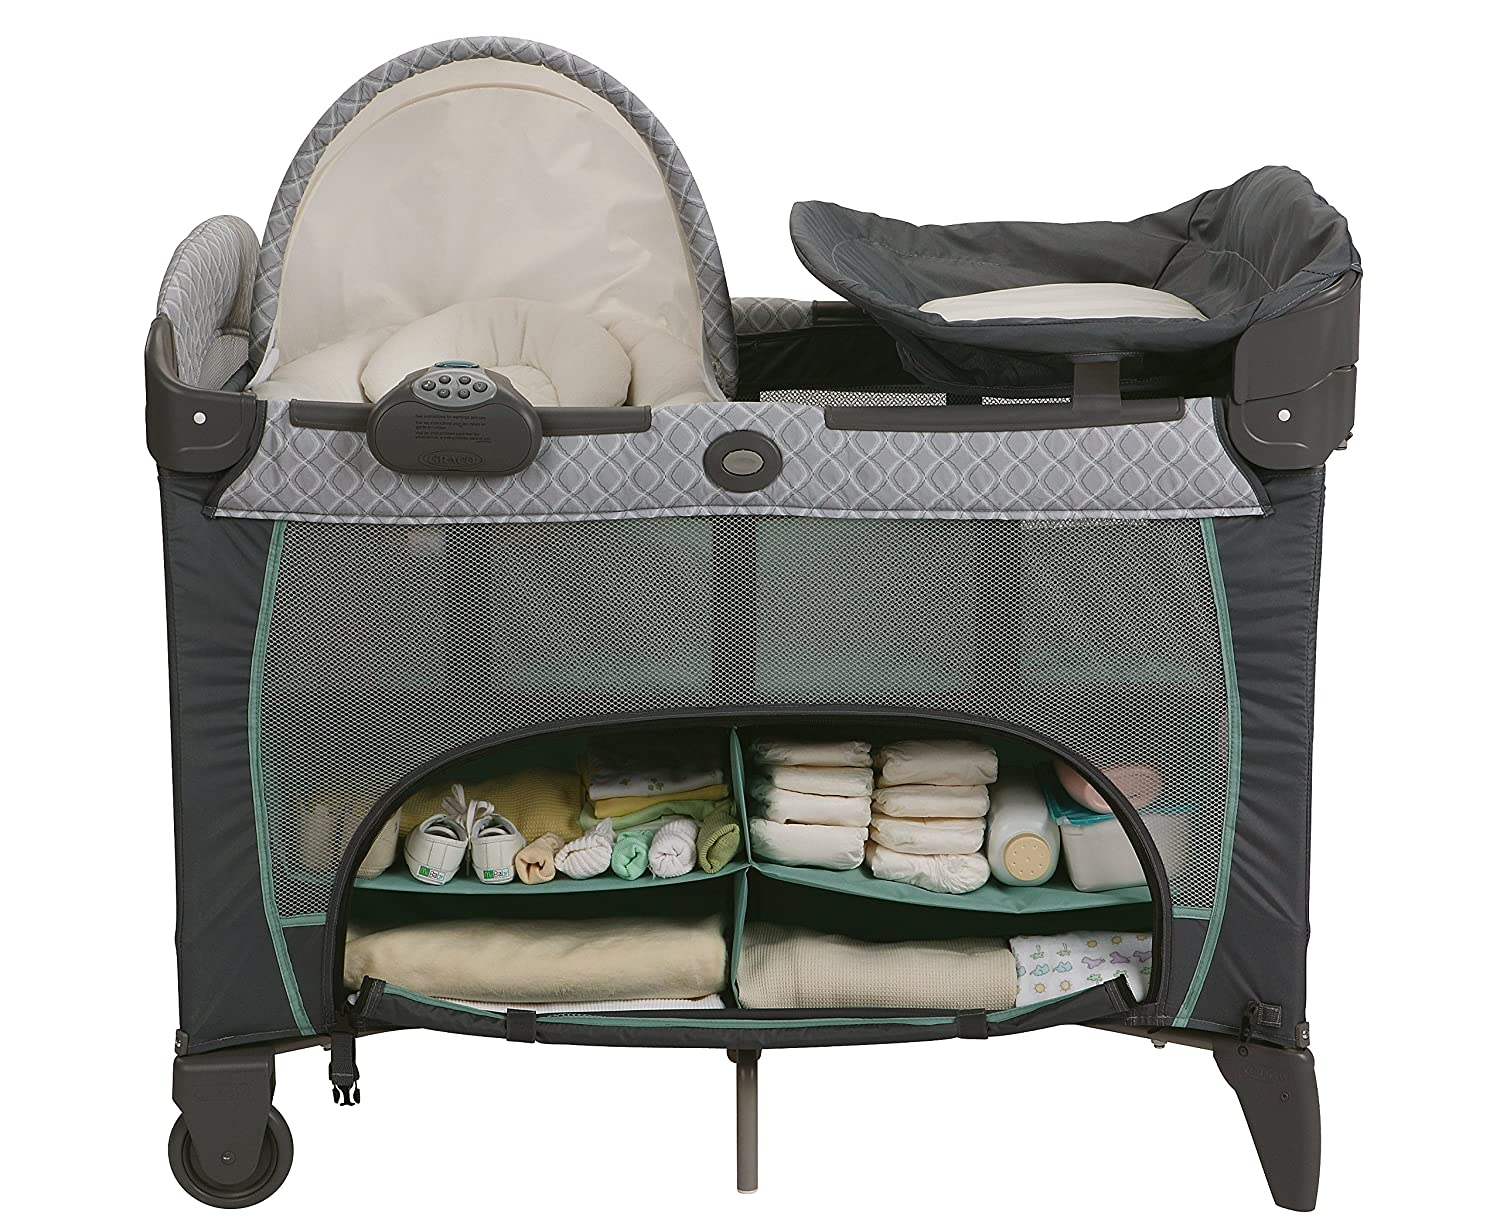 Amazon.com : Graco Pack 'N Play Playard with Newborn Napperstation DLX,  Manor : Baby